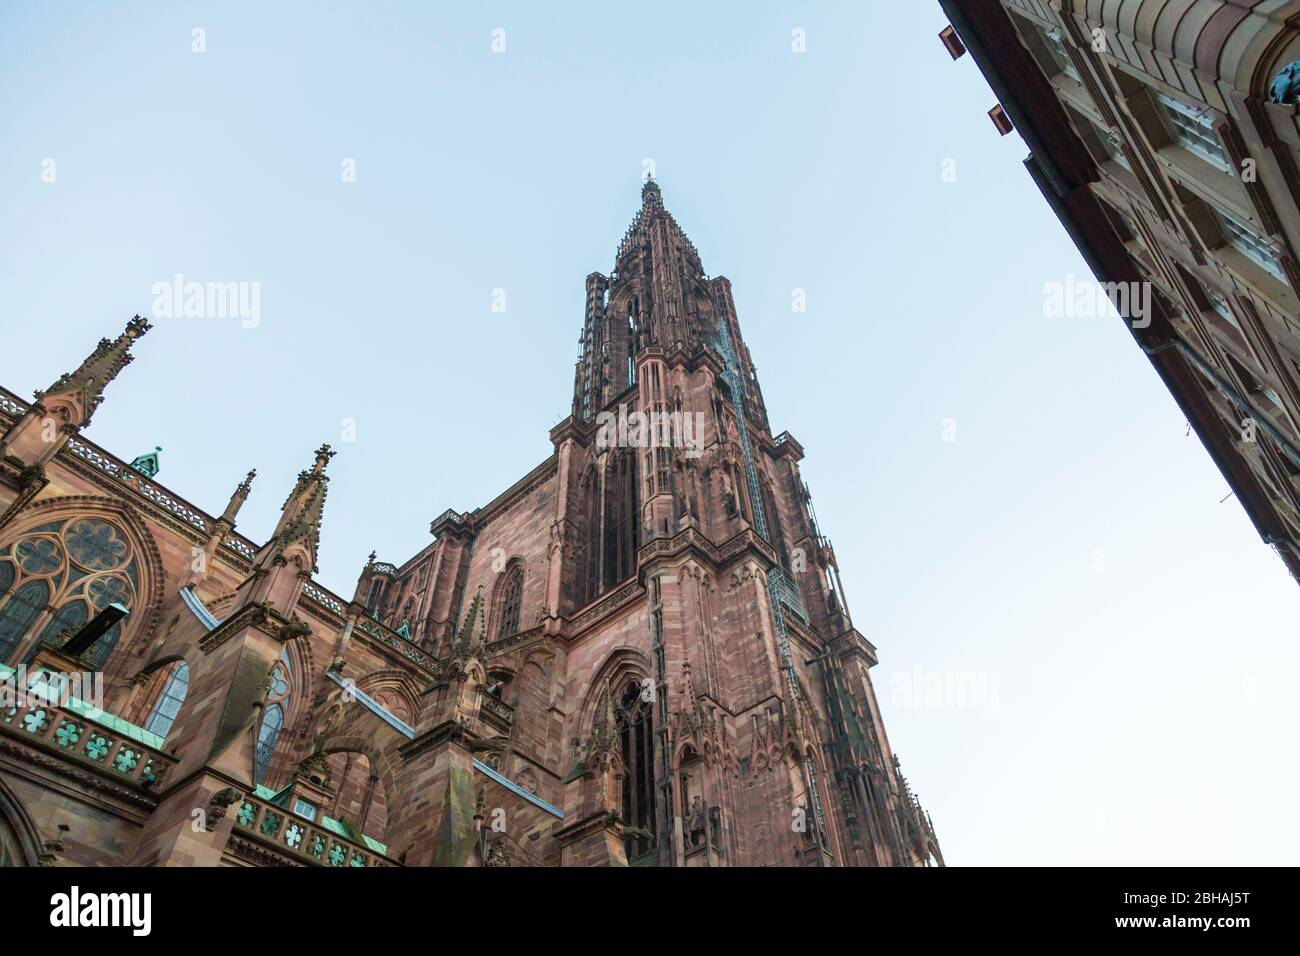 Ornate Gothic spire of Strasbourg Cathedral, Alsace, France viewed from below against a hazy sky Stock Photo